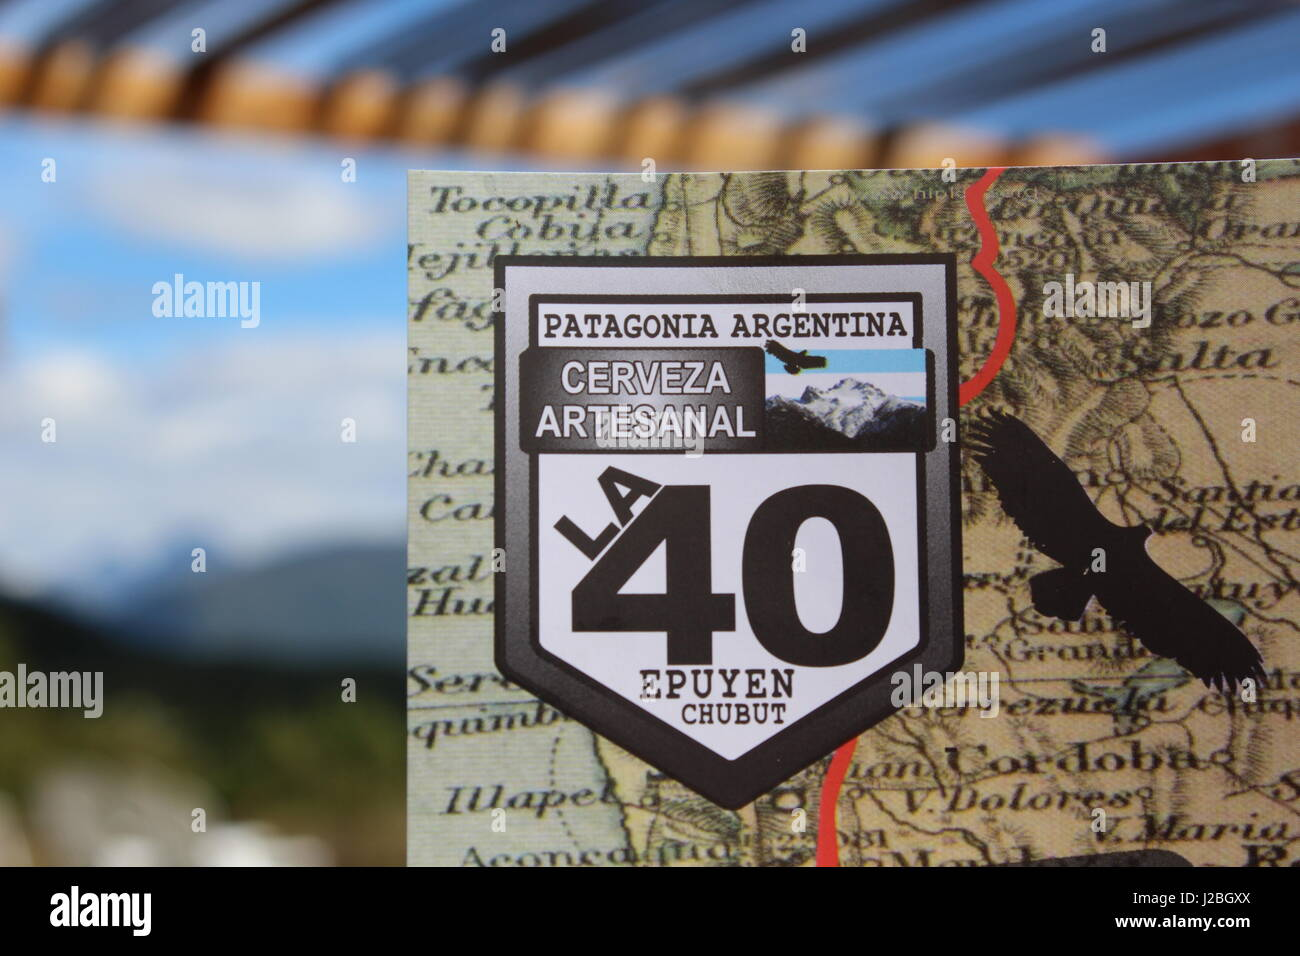 Route 40 sign in Argentina - Stock Image